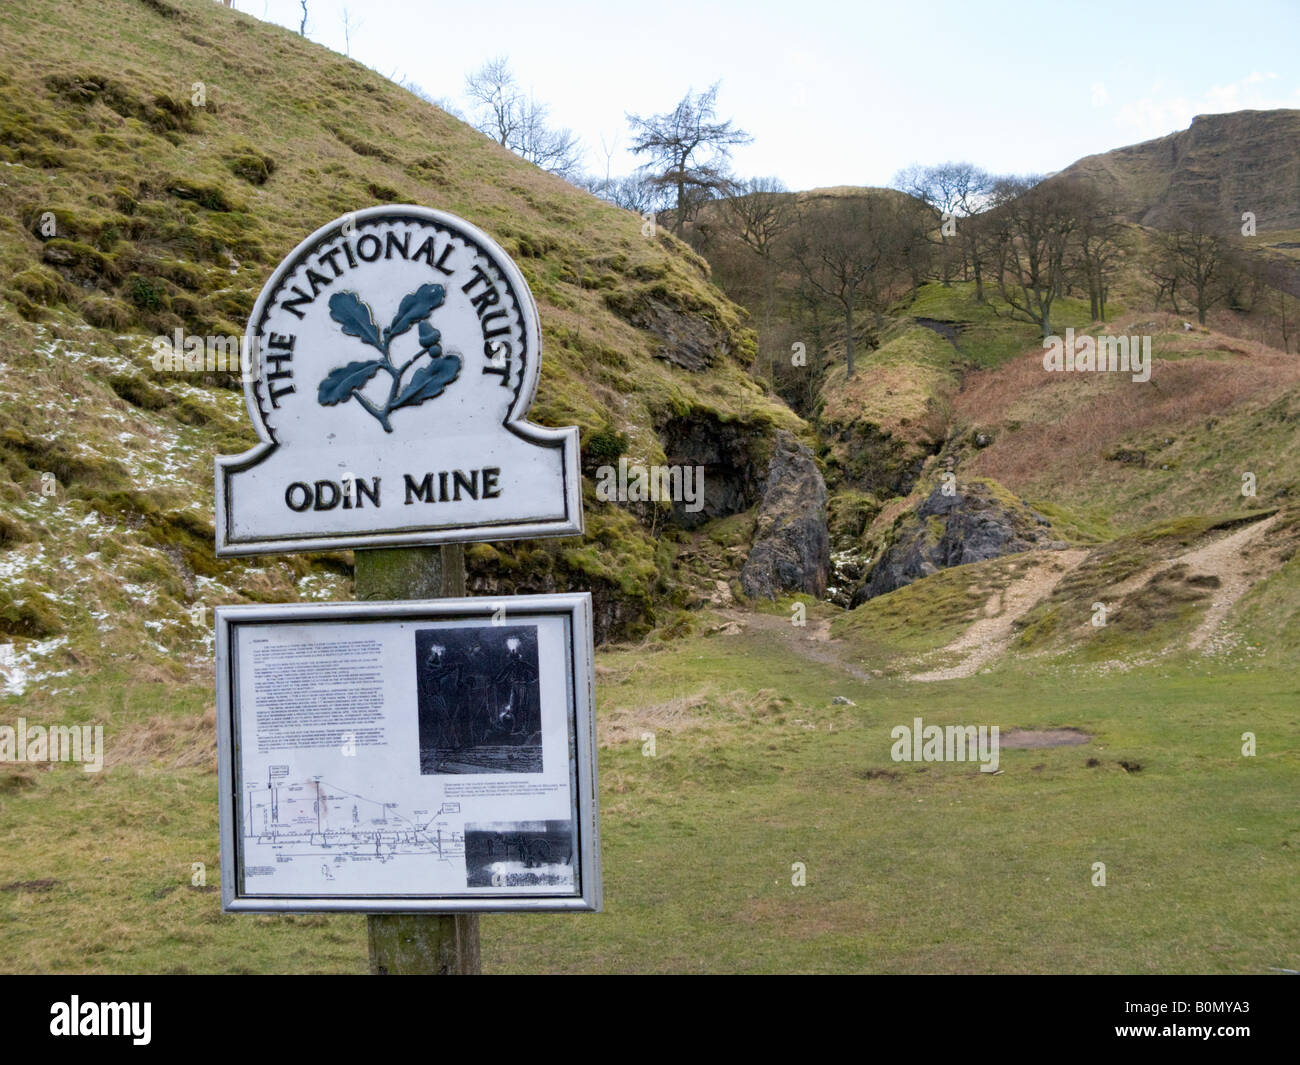 Entrance to the abandoned Odin lead mine, at the foot of Treak Cliff hill at Castleton, Derbyshire, England. UK. - Stock Image